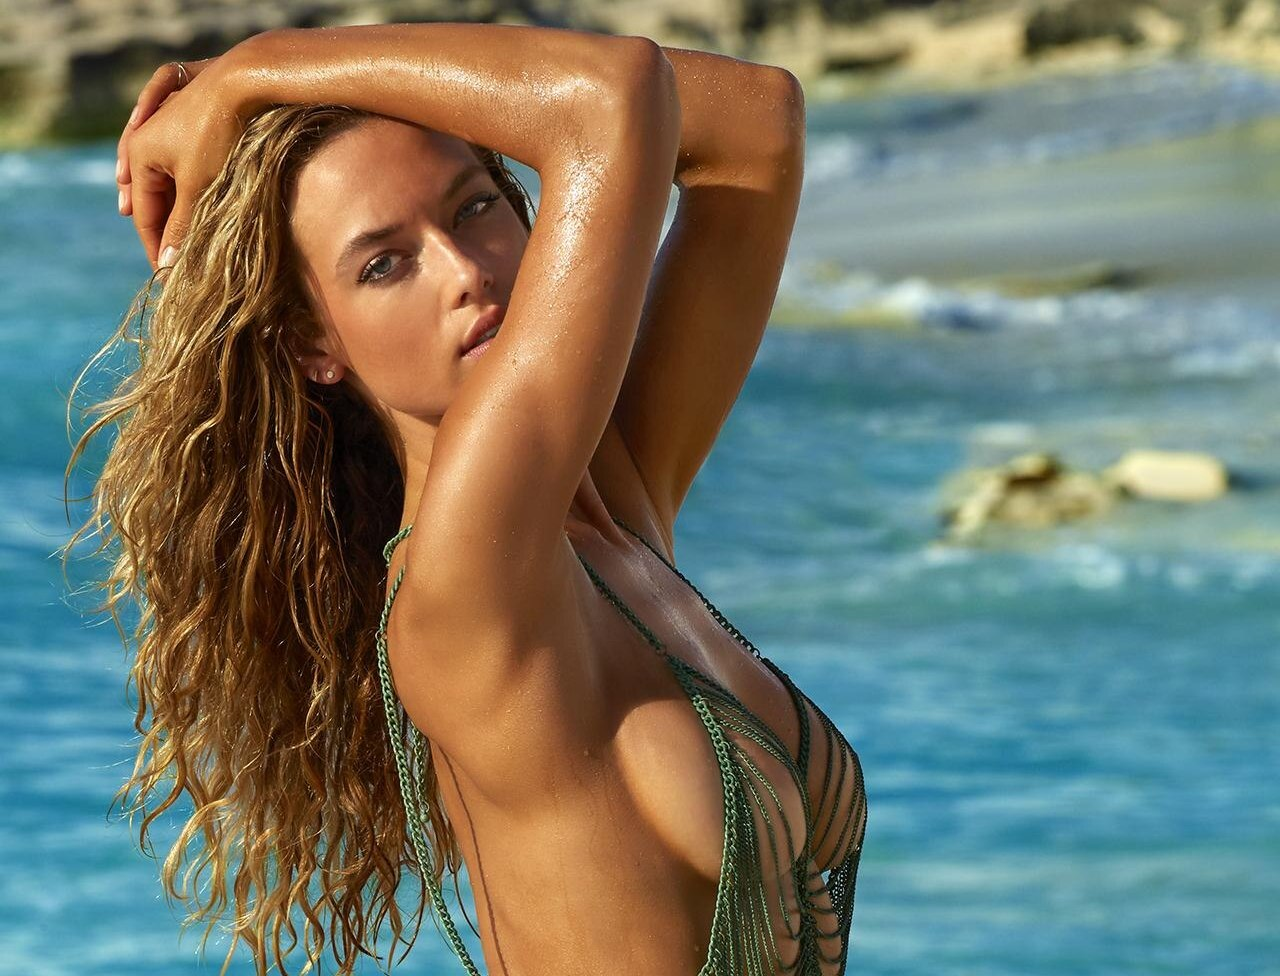 The most controversial sports illustrated swimsuit photos ranked swim week calendar